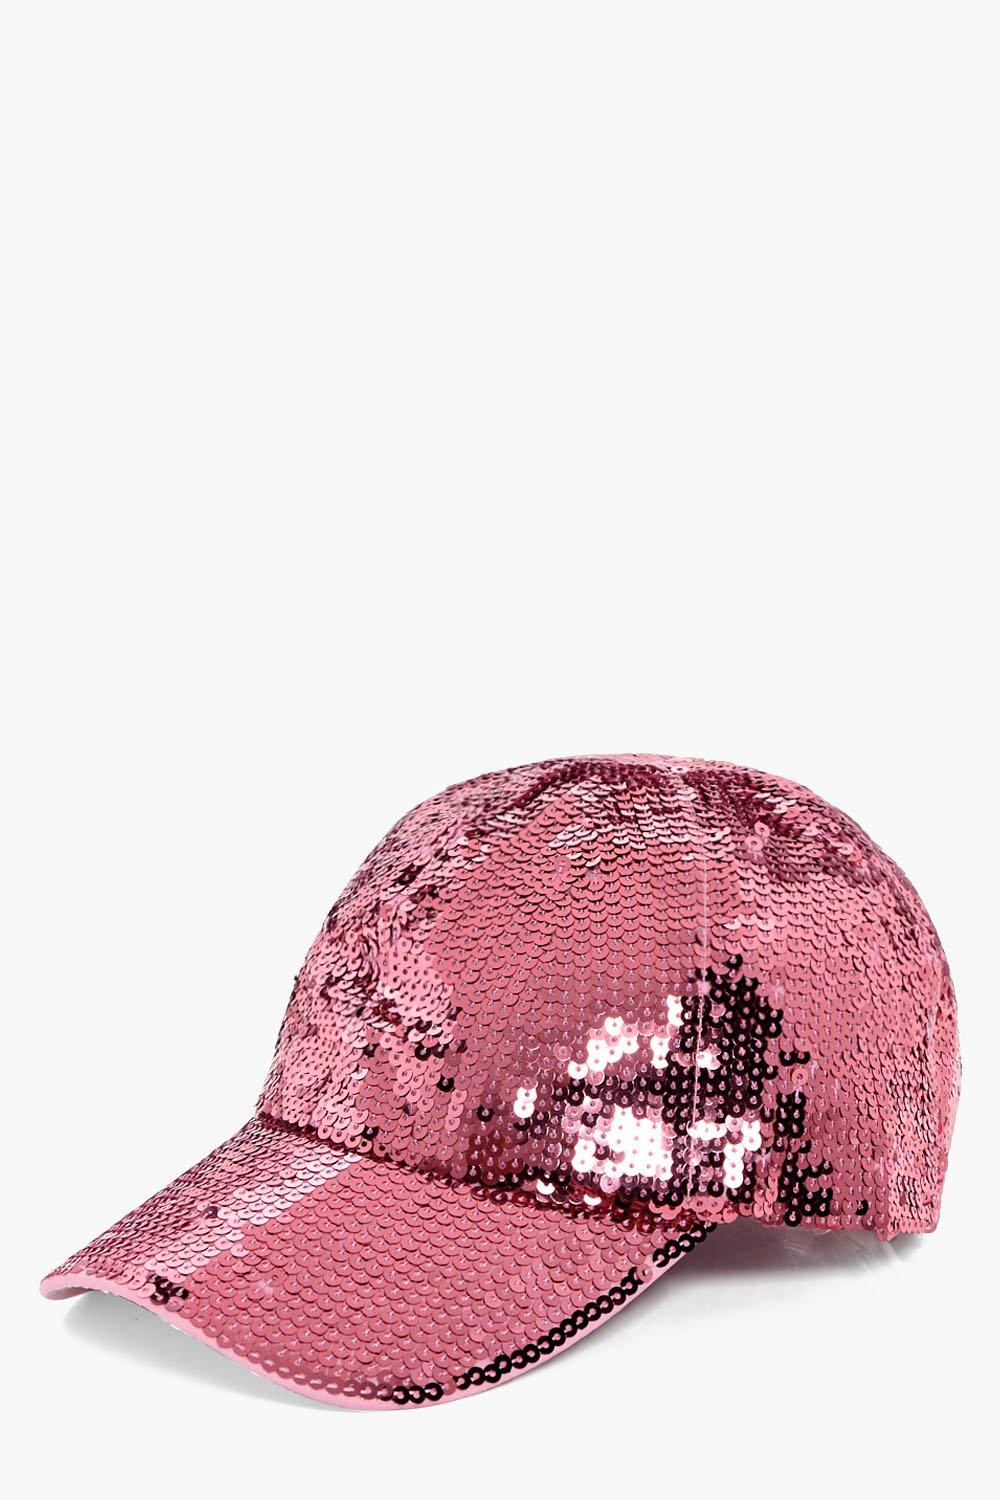 Sequin Baseball Cap - pink - Ava Sequin Baseball C